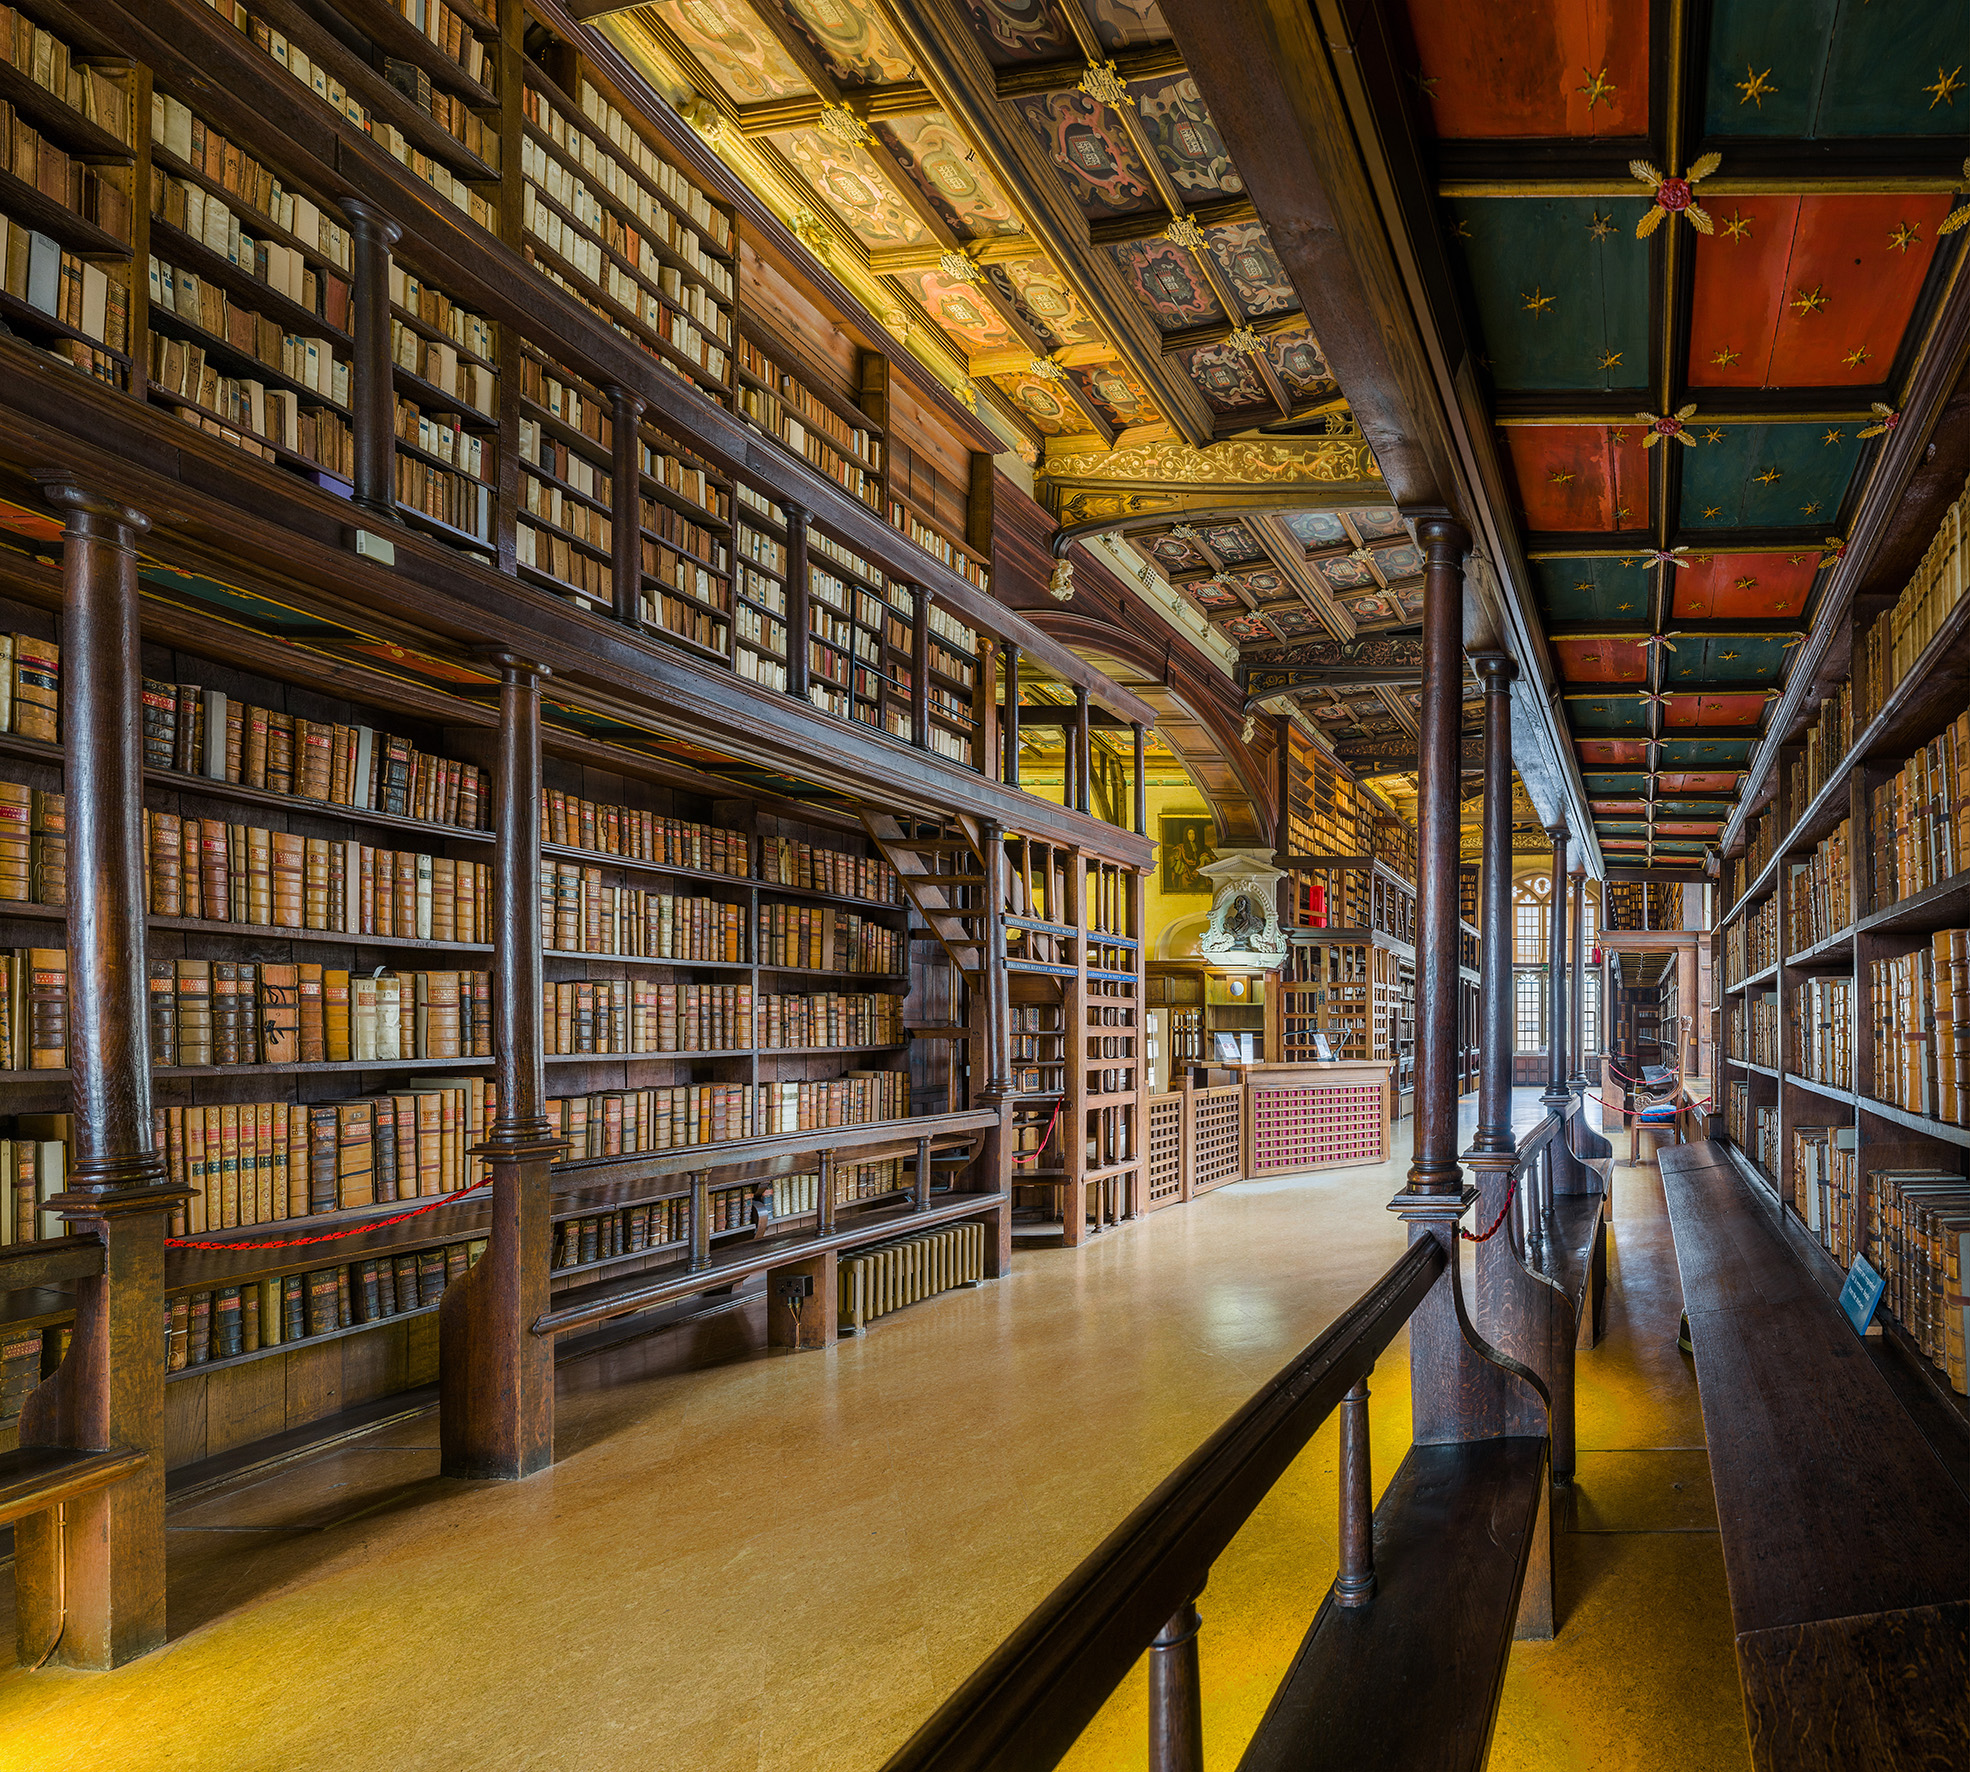 Duke Humfrey's Library Interior 3, Bodleian Library, Oxford, UK - Diliff.jpg